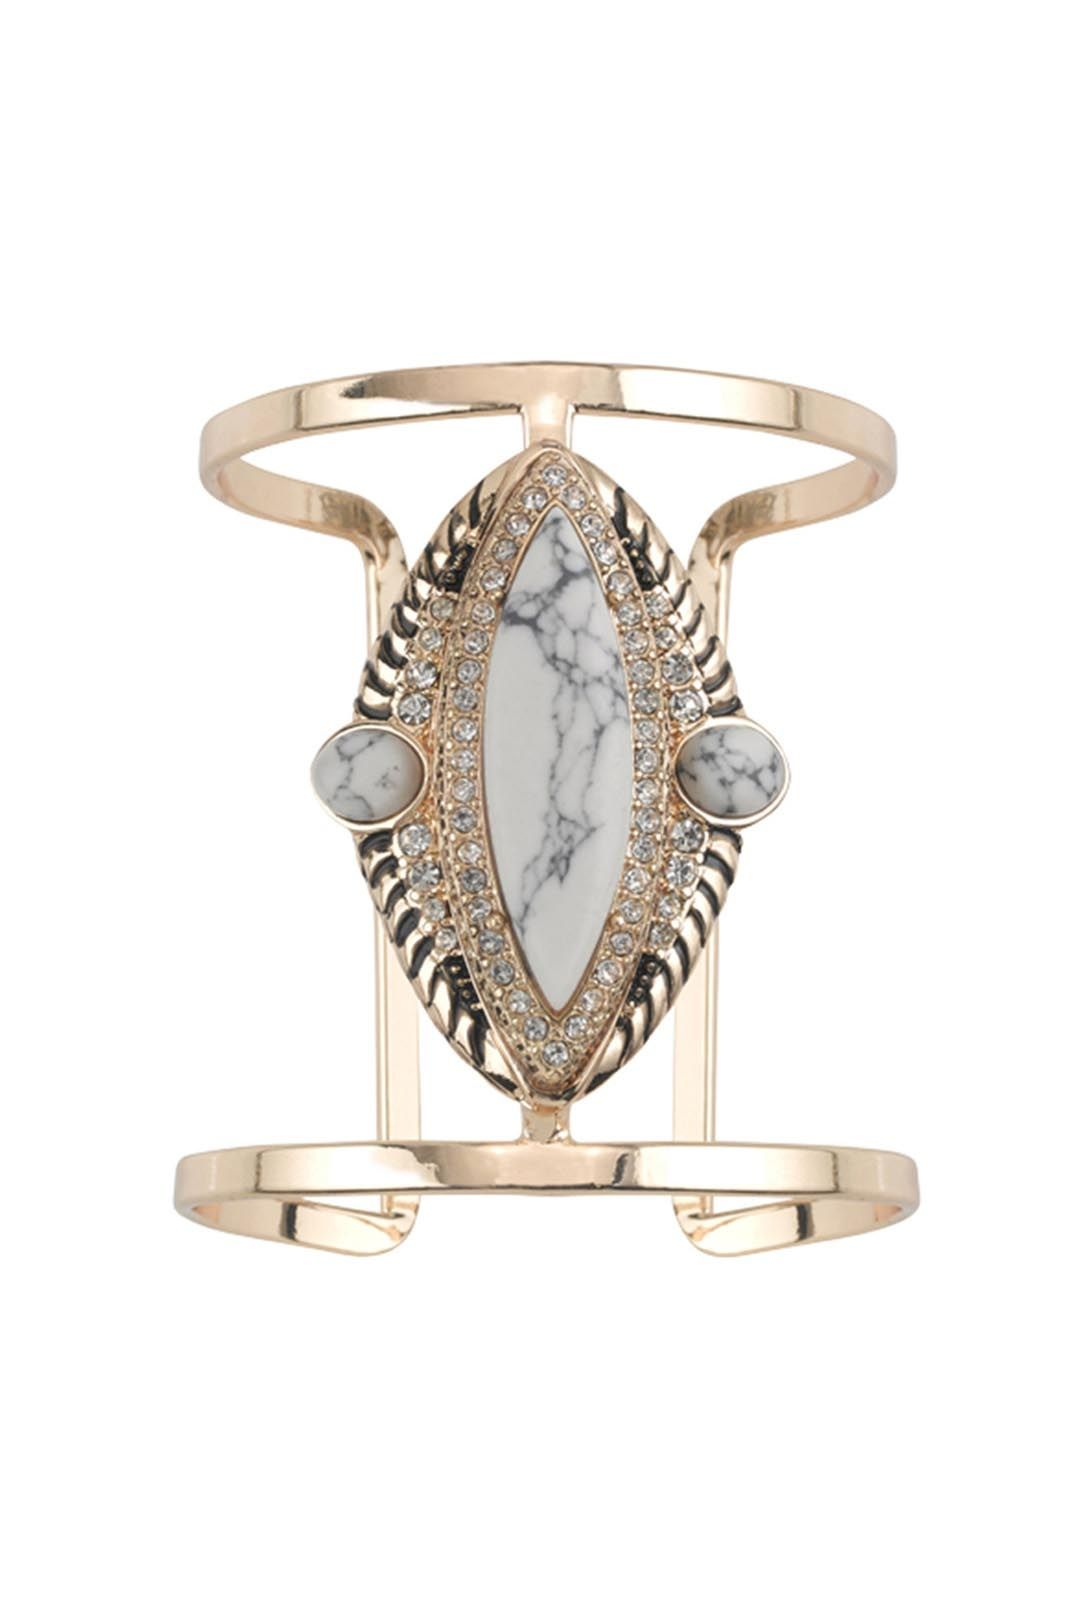 Samantha Wills - Reality of Dreams Grand Cuff - Gold - Front